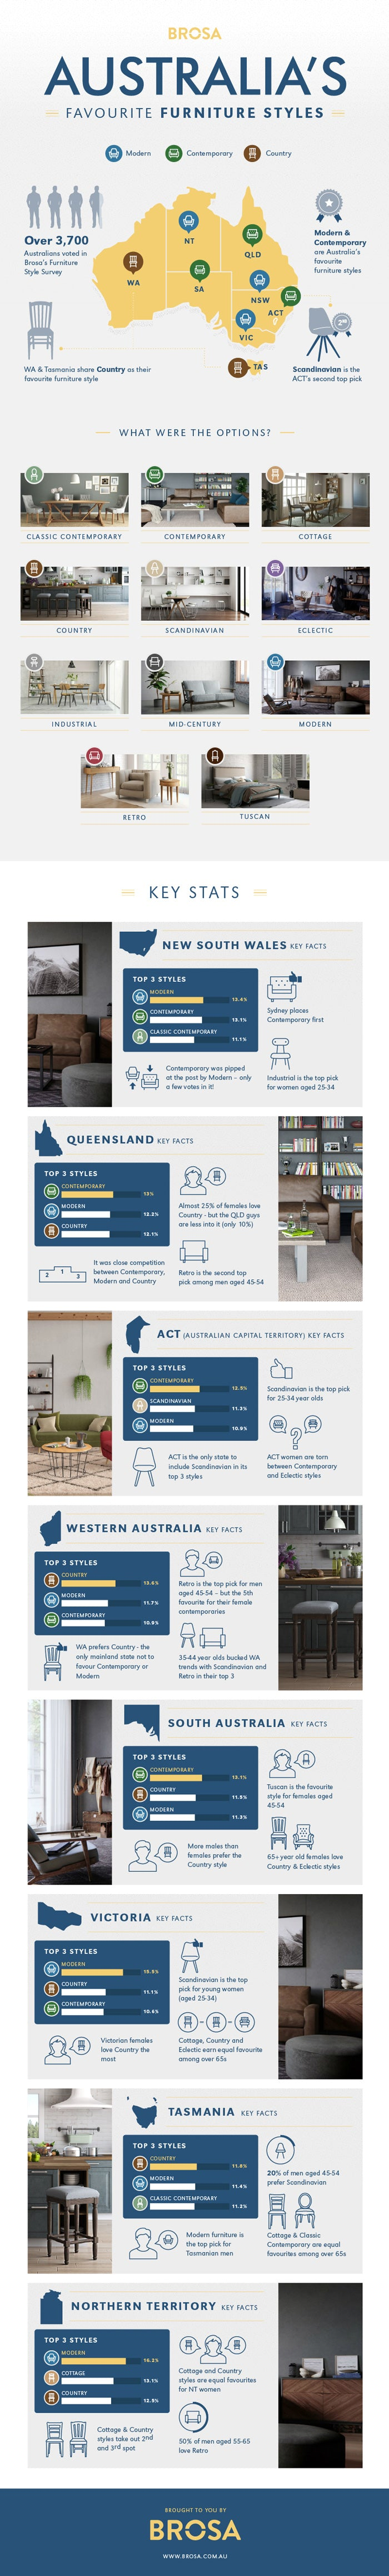 Australia's-favourite-style-Furniture-Style-Survey-Infographic